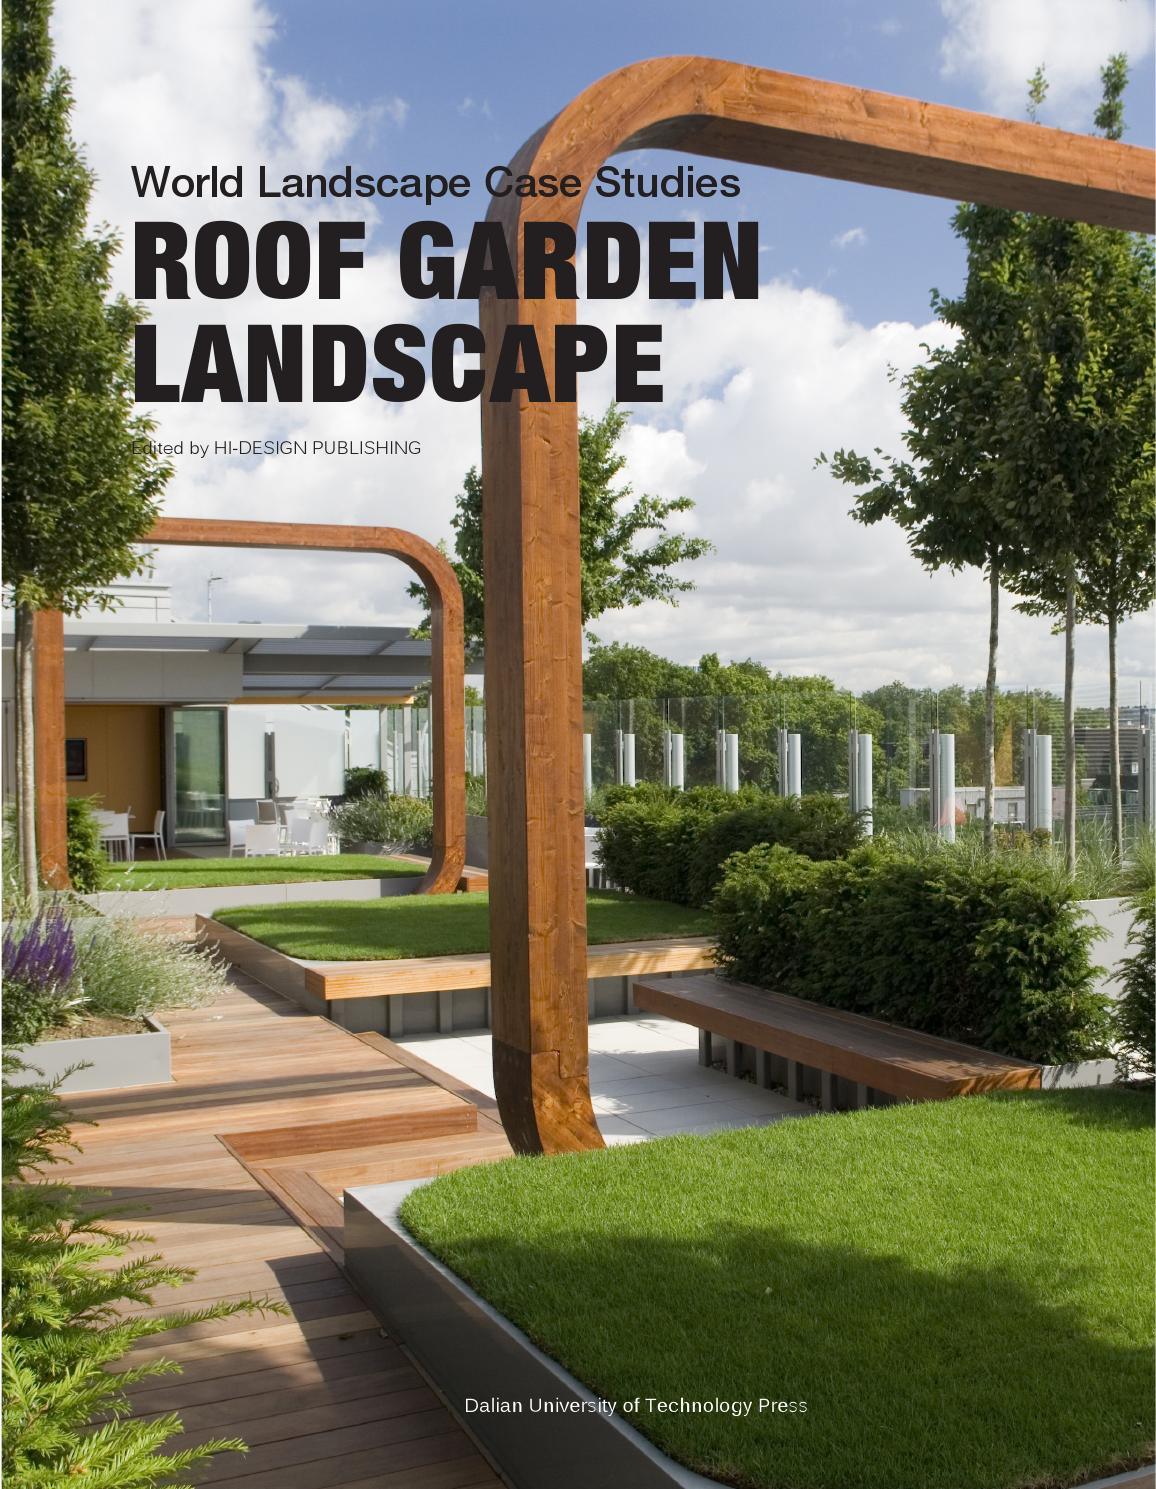 Roof Garden Landscape   World Landscape Case Studies By HI DESIGN  INTERNATIONAL PUBLISHING (HK) CO., LTD.   Issuu